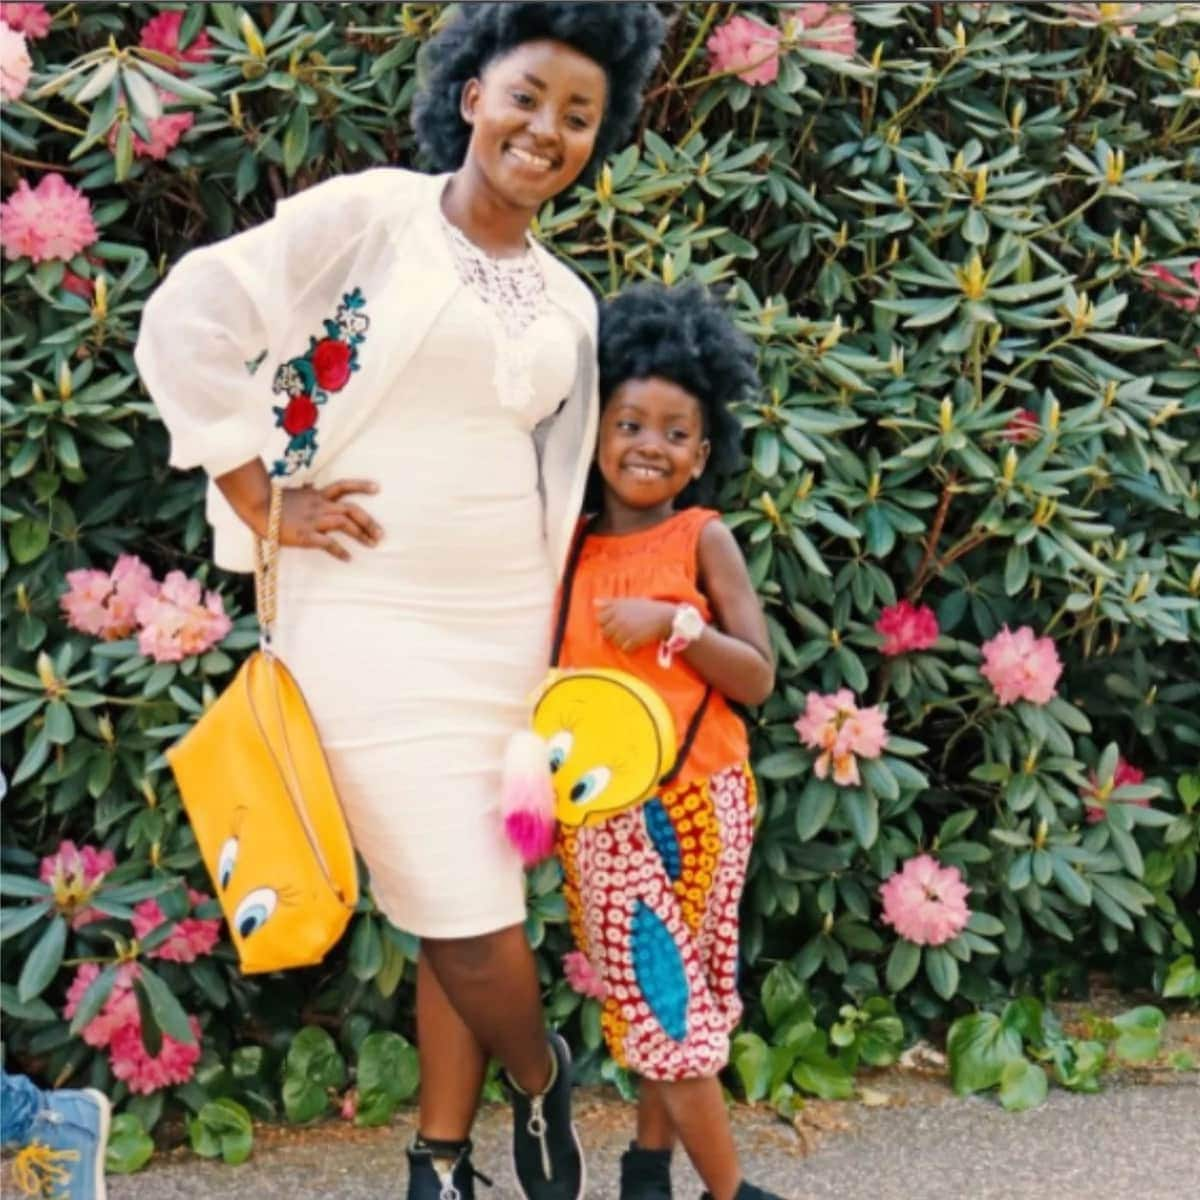 Okyeame Kwame sends love and warm wishes to his daughter Sante on her birthday